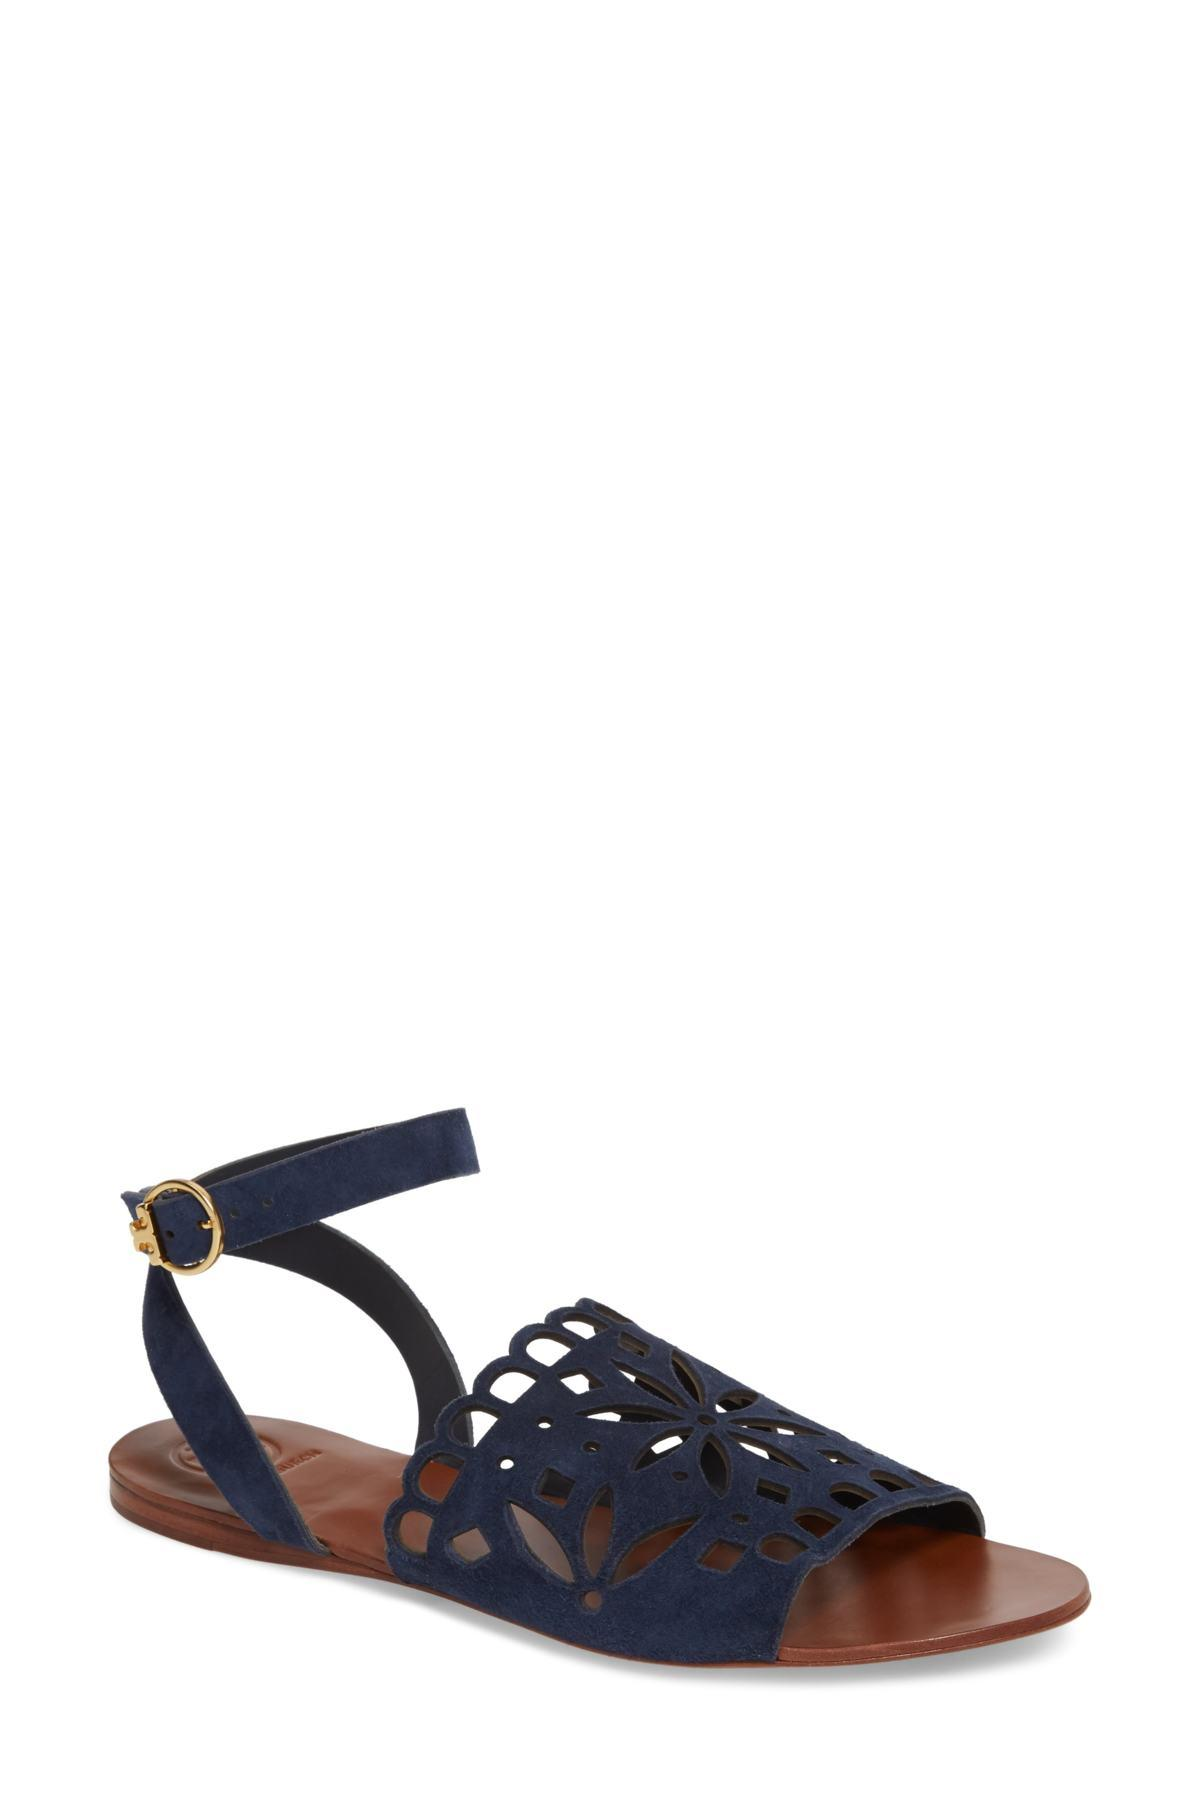 8d3c88f5729c Lyst - Tory Burch May Perforated Ankle Strap Sandal (women) in Blue